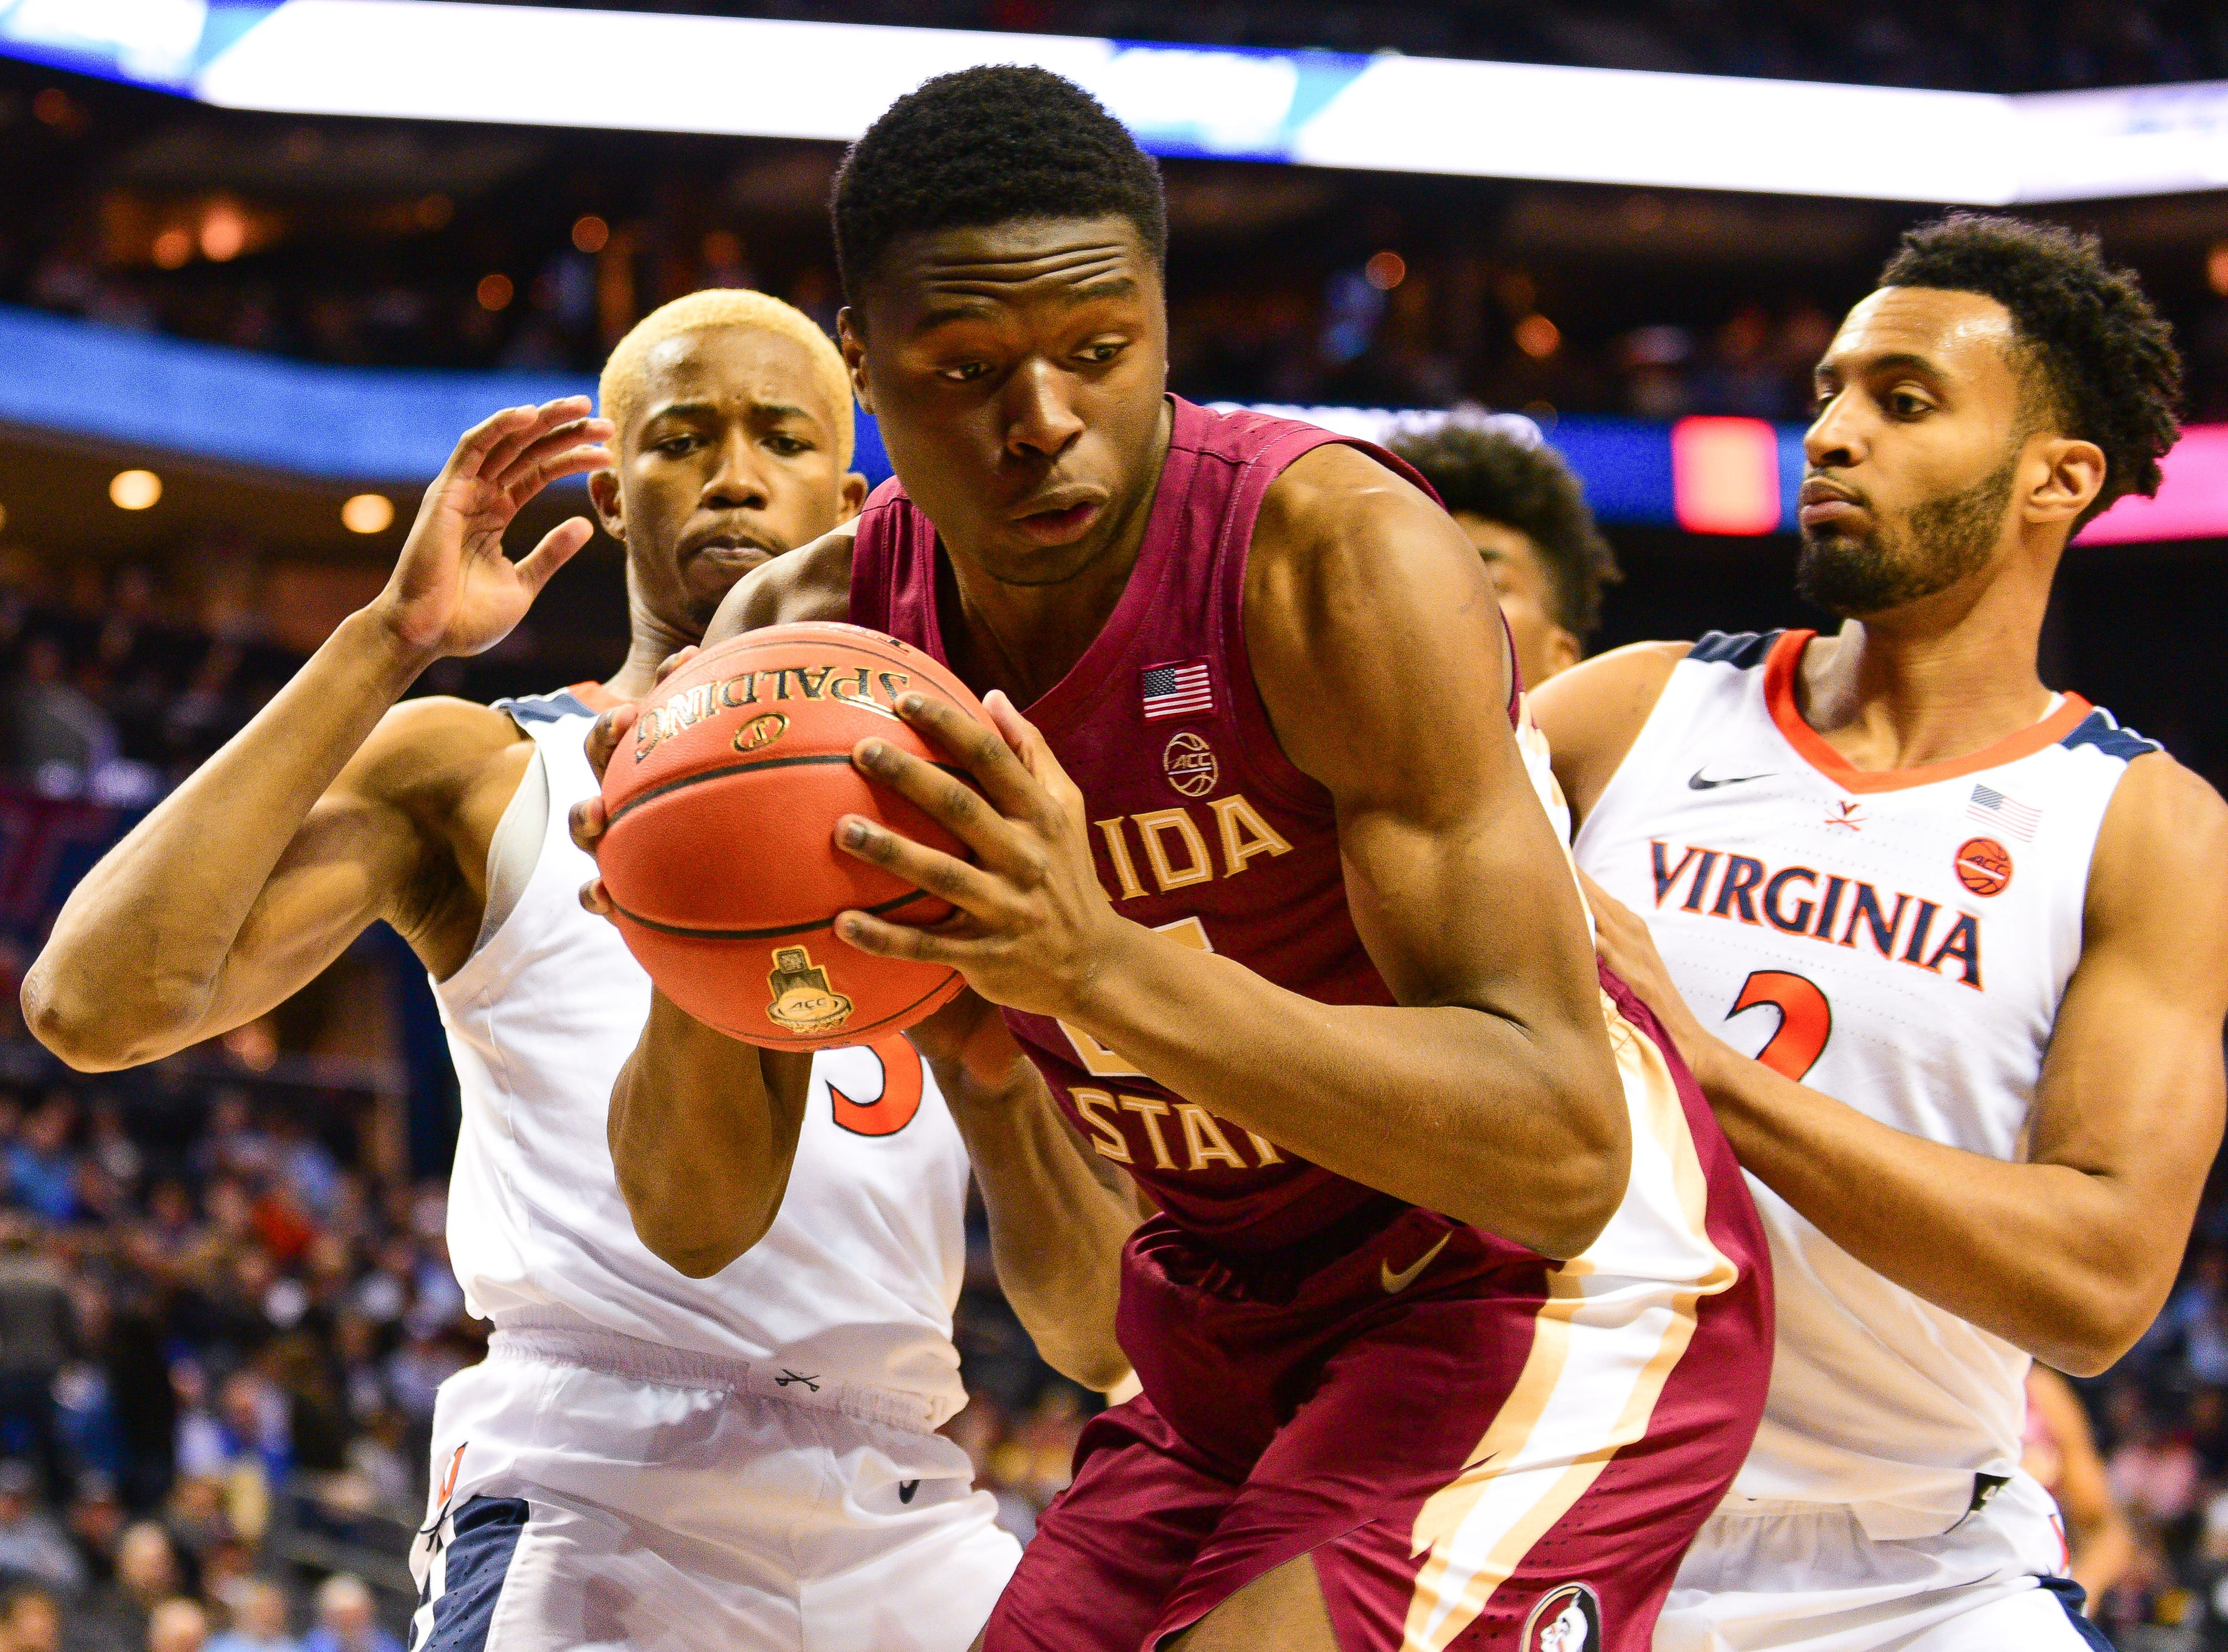 Surrounded by Virginia defense, Florida State redshirt sophomore forward Mfiondu Kabengele considers another strategy during the first half of the ACC Tournament Semifinals at the Spectrum Center in Charlotte on Friday.